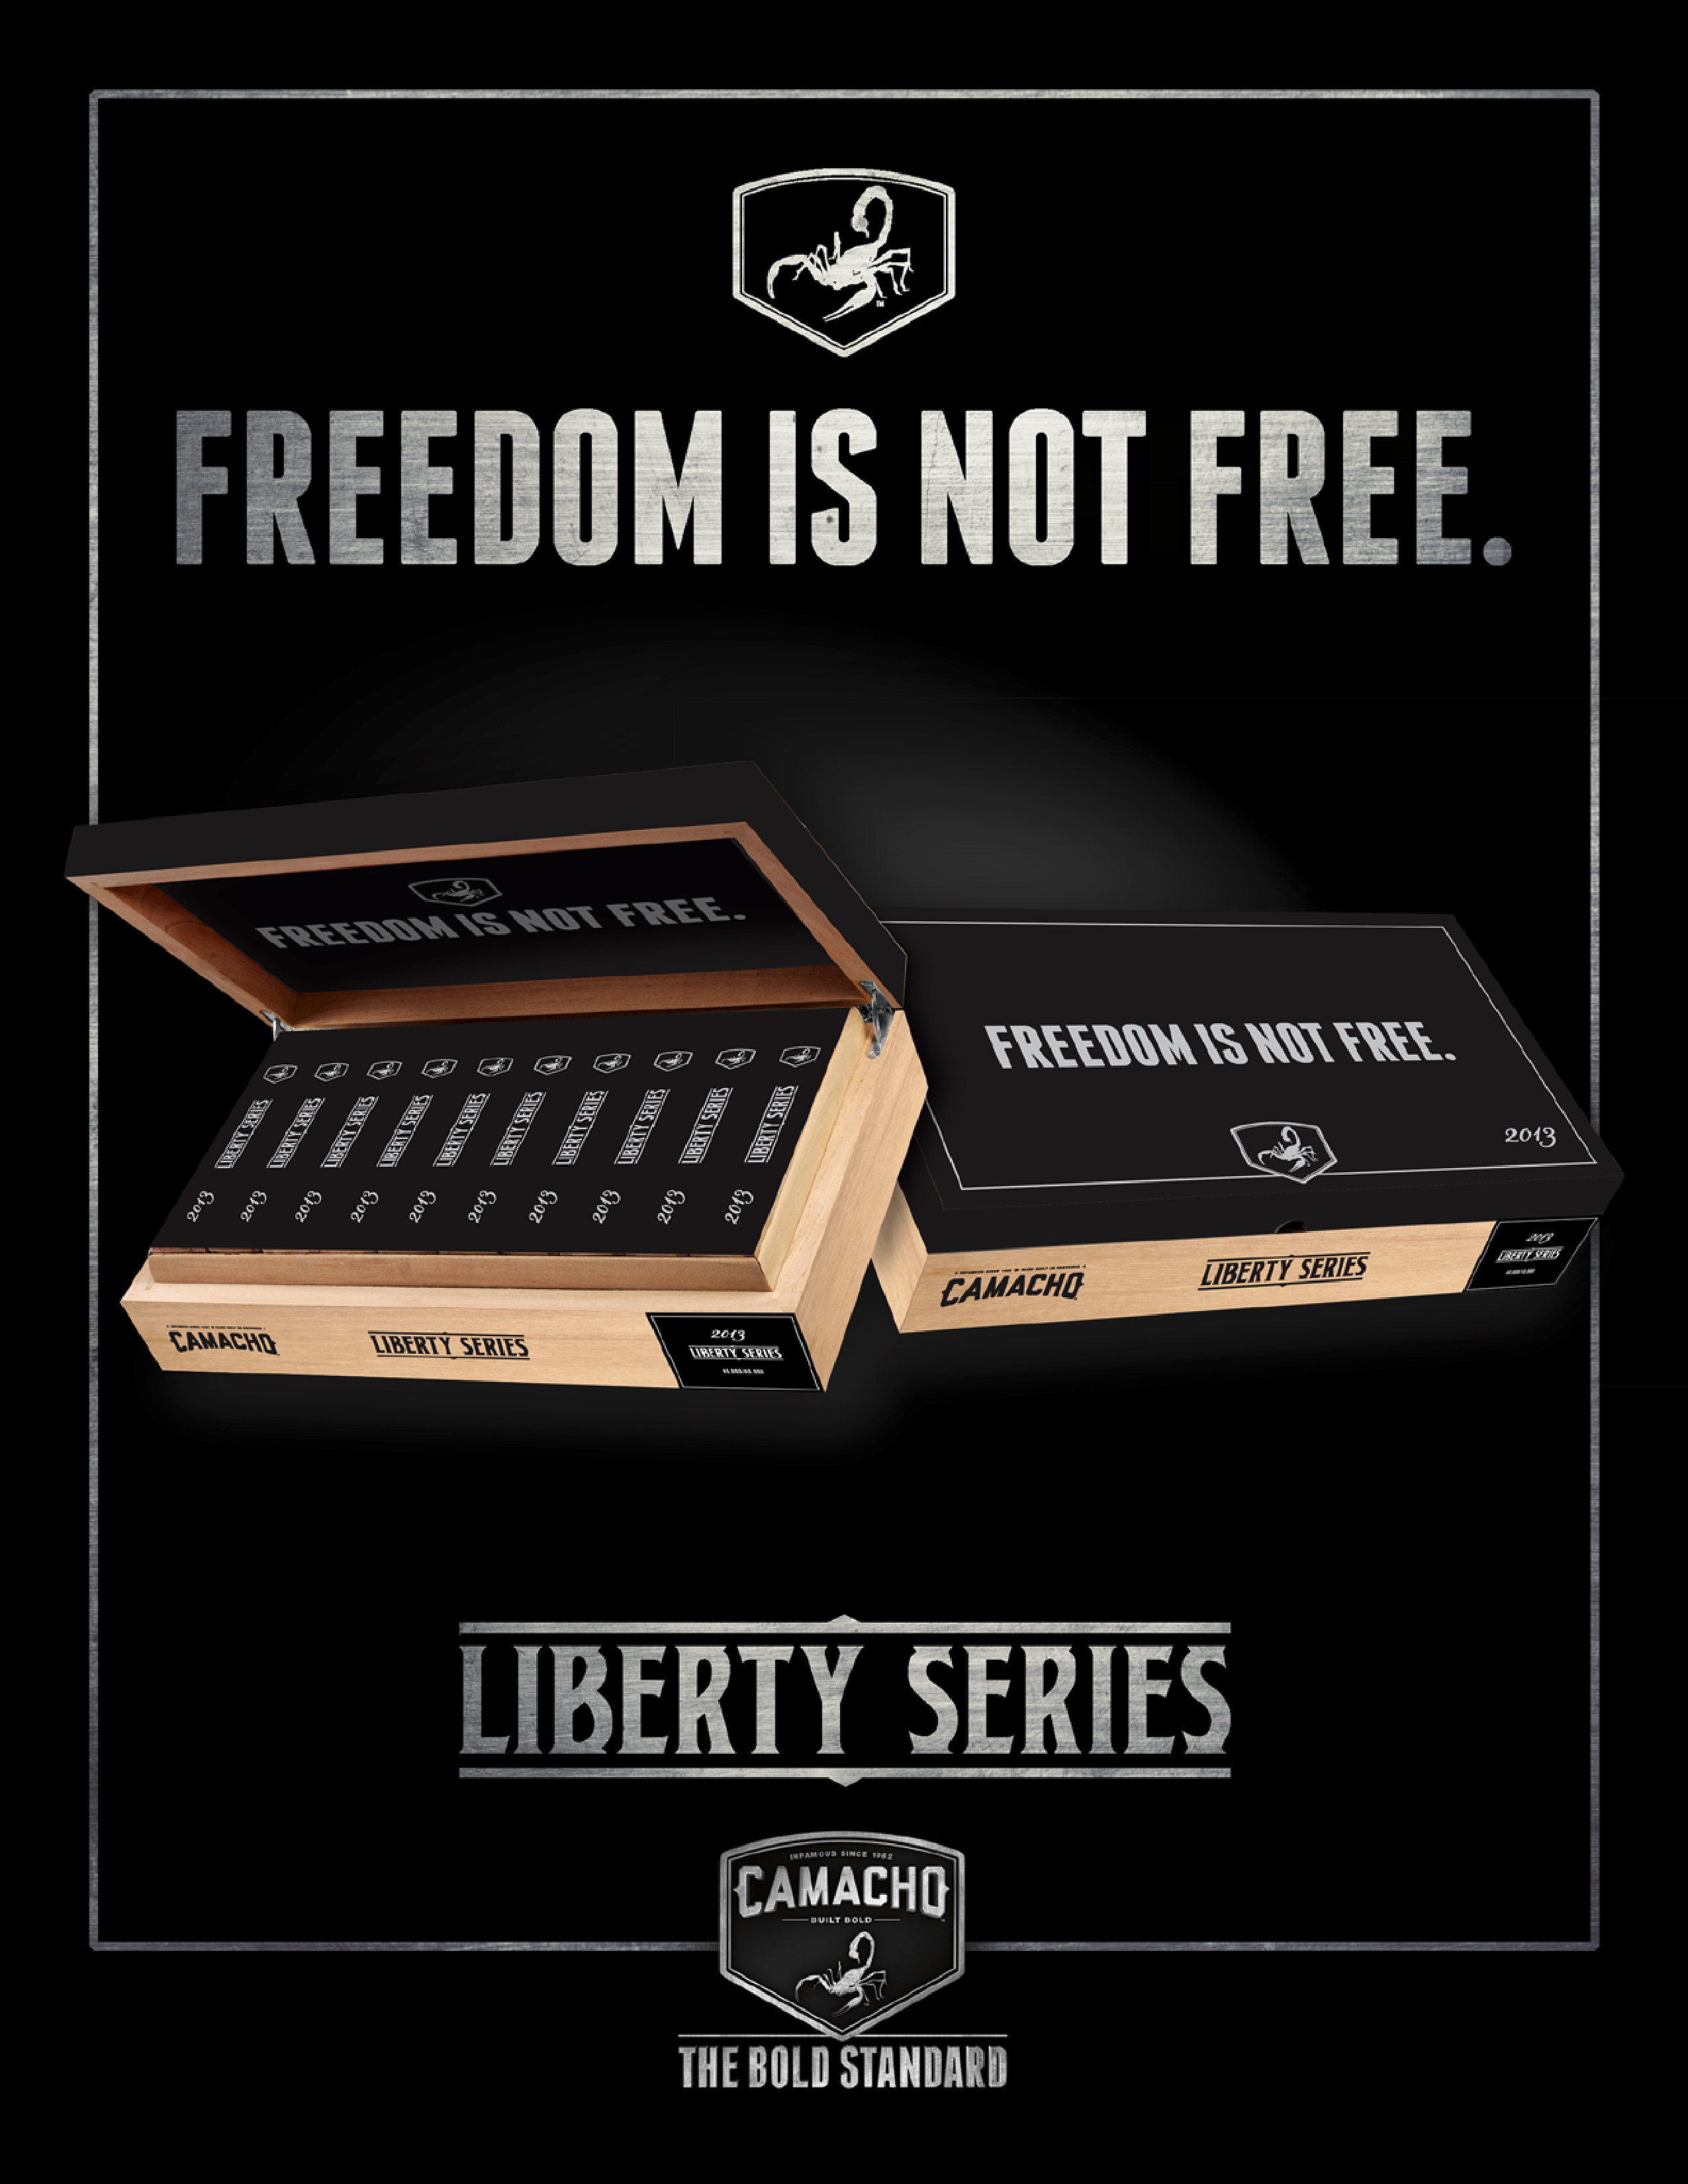 Camacho Liberty 2013: Release Date September 30, 2013